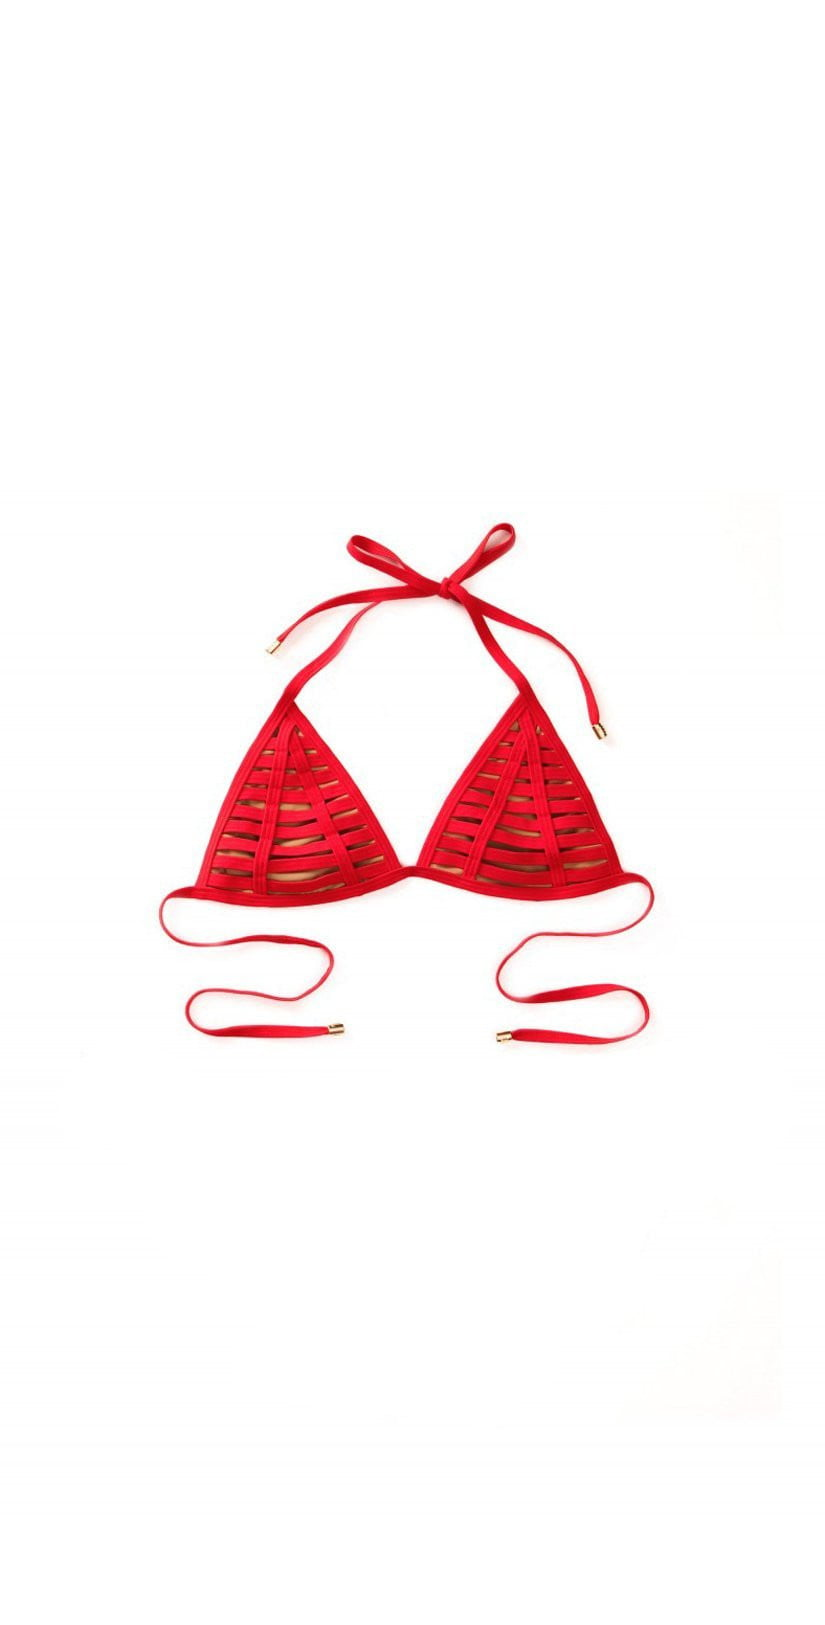 Beach Bunny Hard Summer Triangle Bikini Top In Red B16104T1-RED: